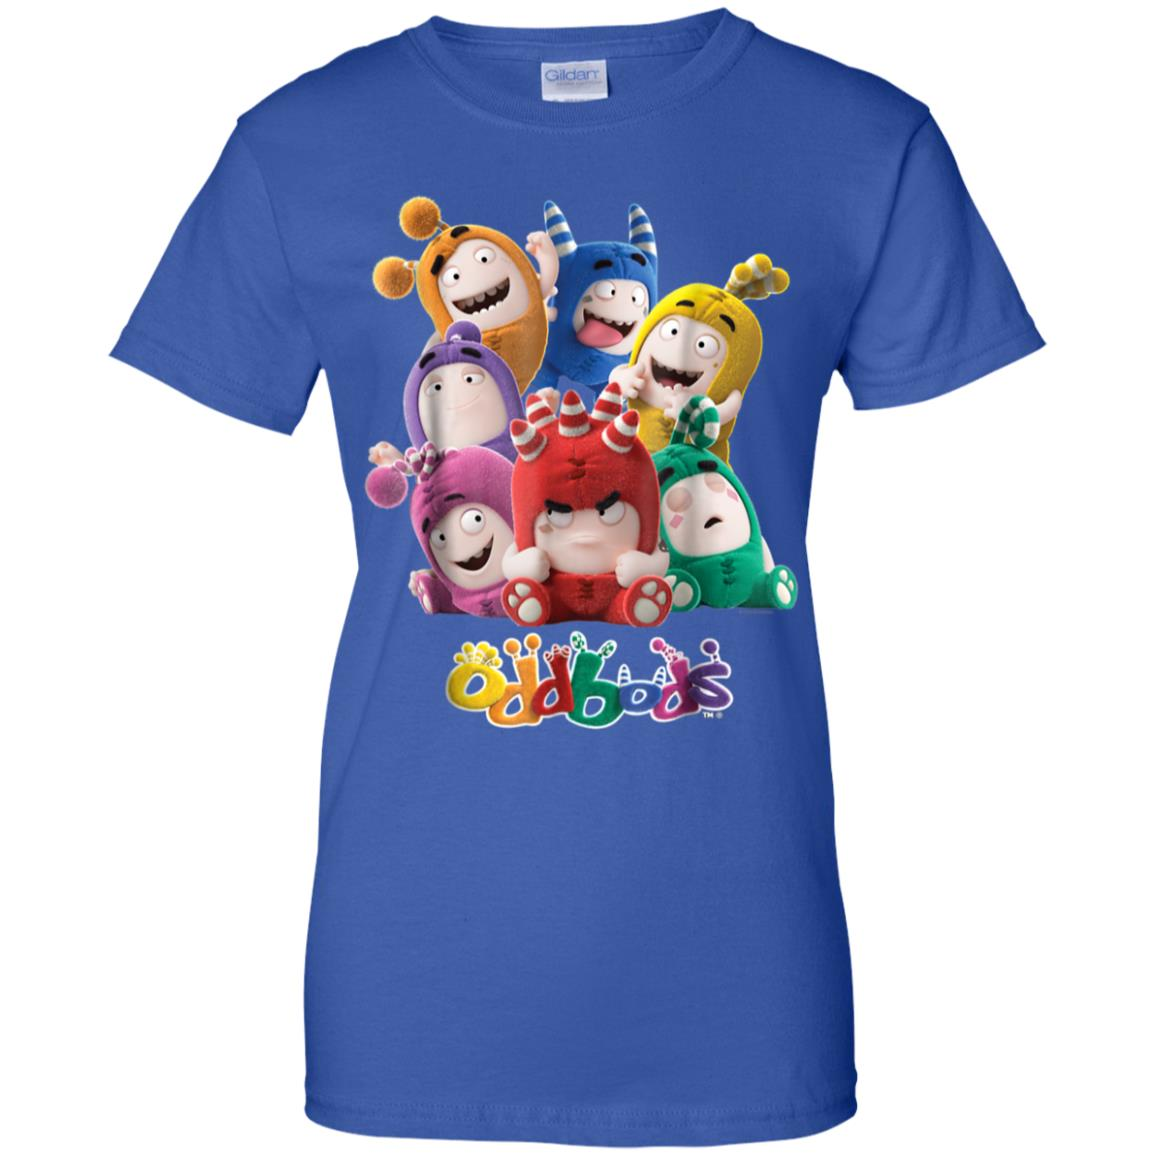 8fa73a5a7 Awesome oddbods all 7 characters in cute funny poses t shirt ...